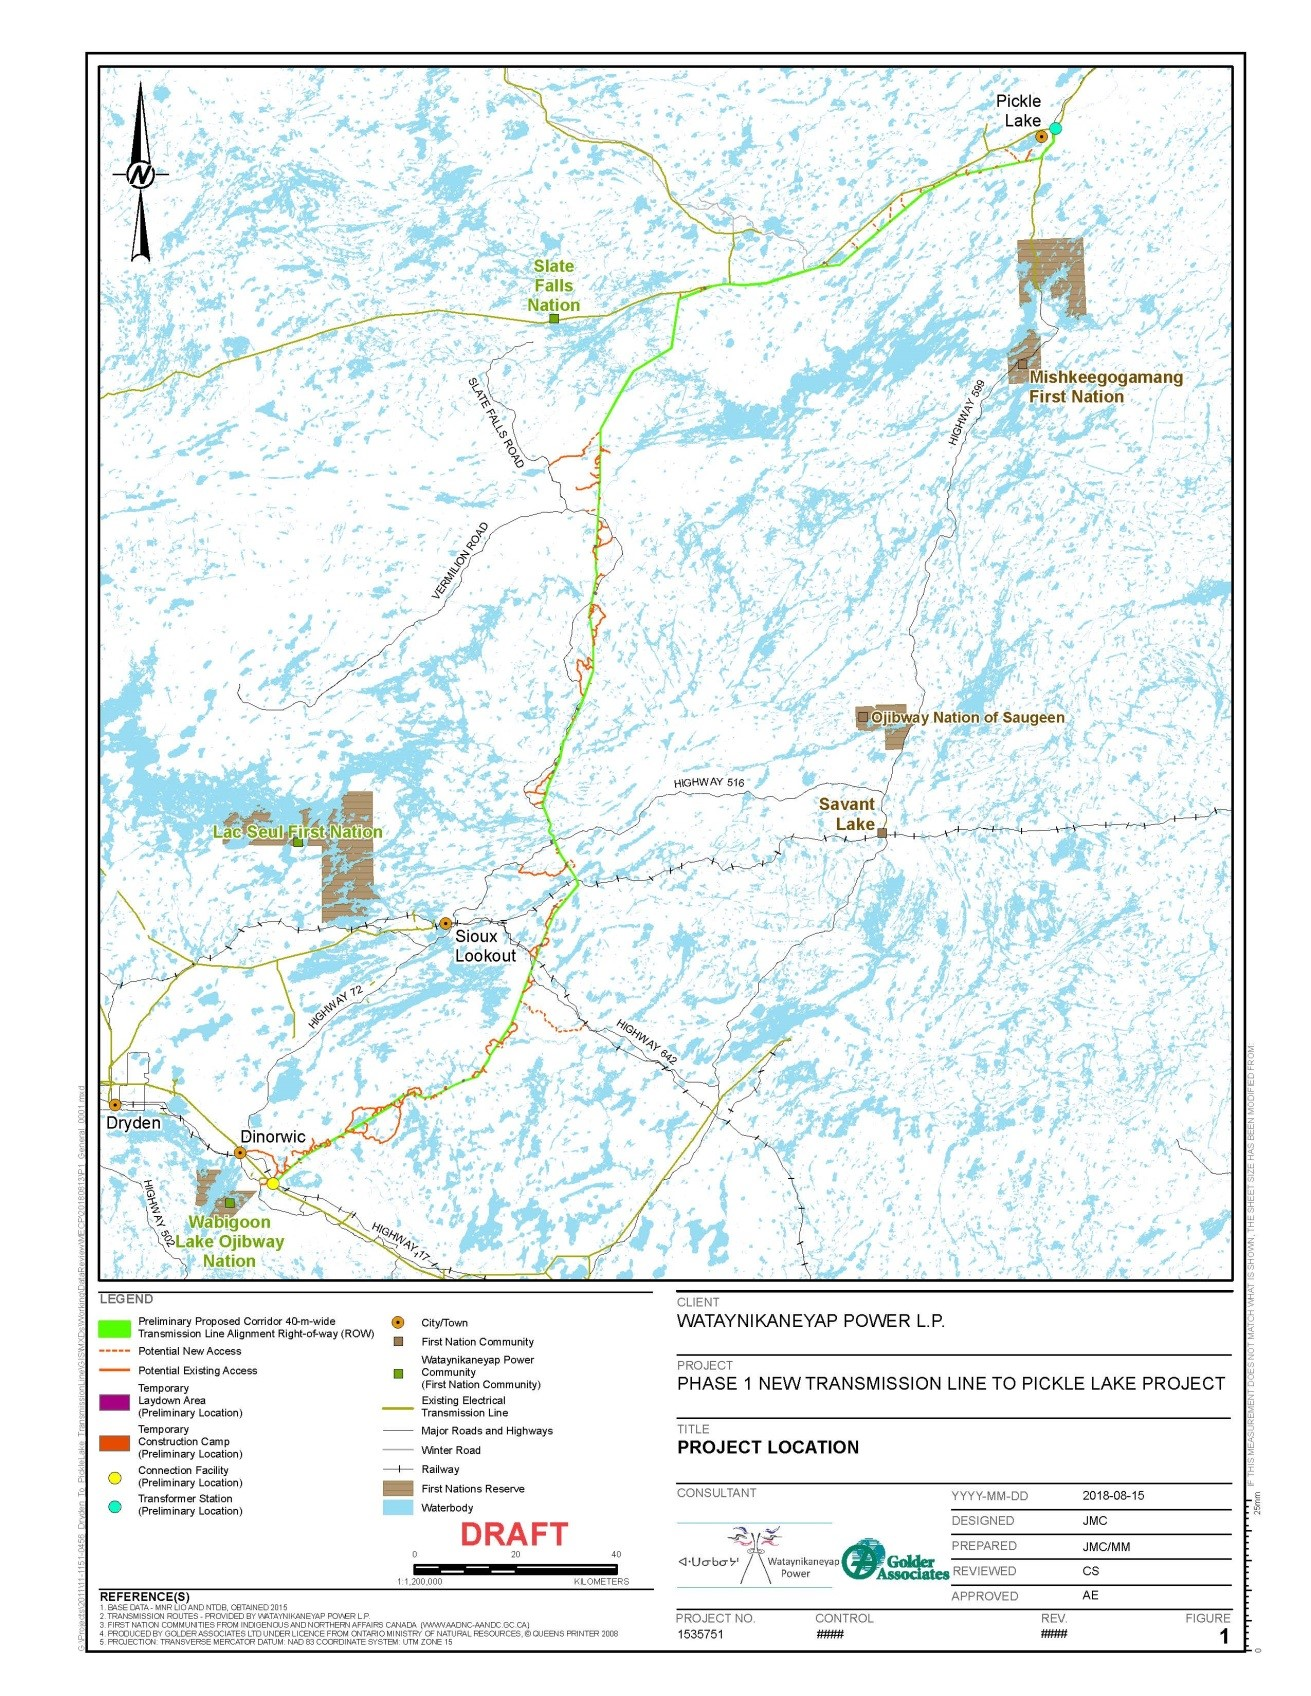 Ministry Review Of The New Transmission Line To Pickle Lake Project Example An Electrical Routing Plan View A Larger Version This Map Jpeg